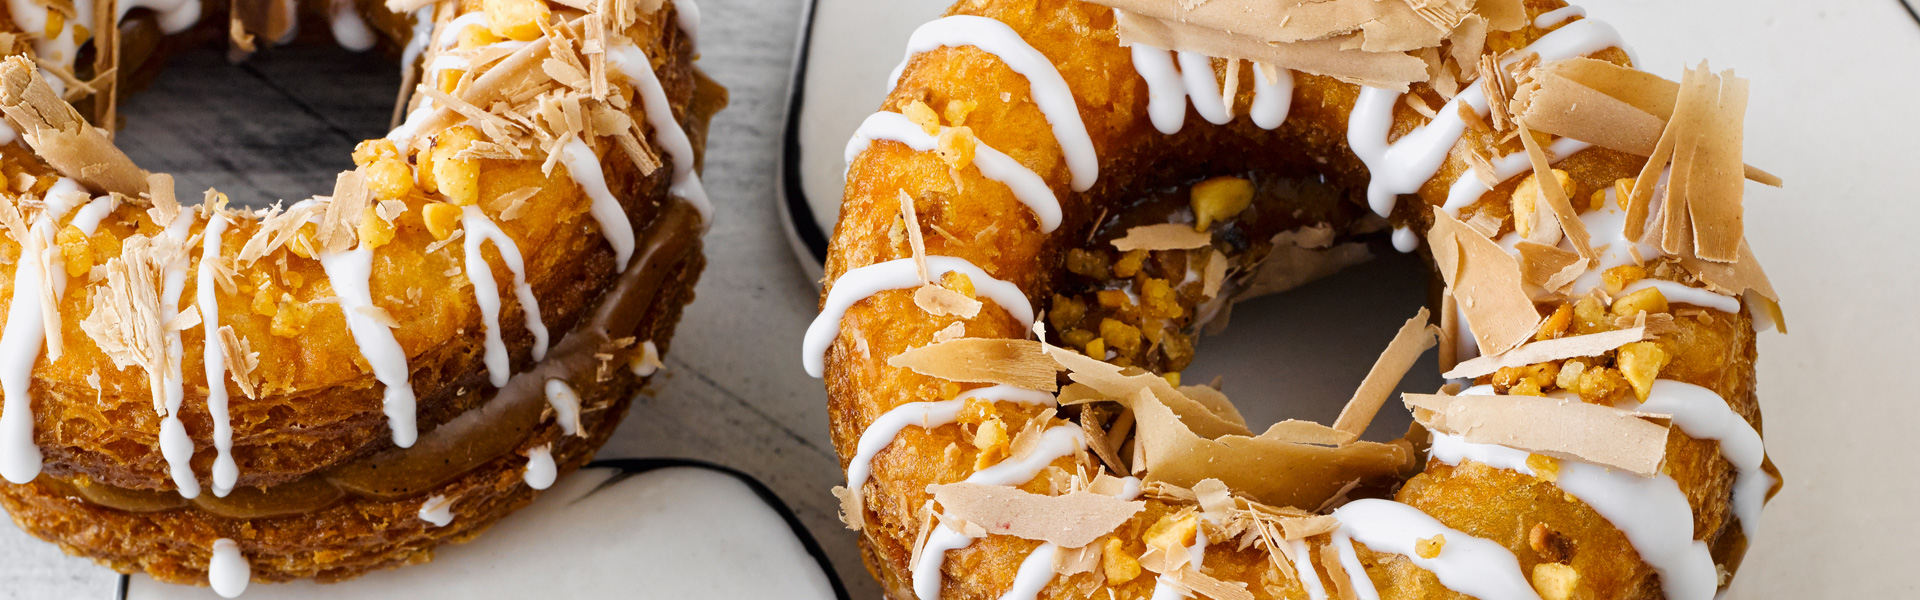 Bake to Impress: Cronuts with Praline Cream Filling and Caramelized Hazelnuts Recipe